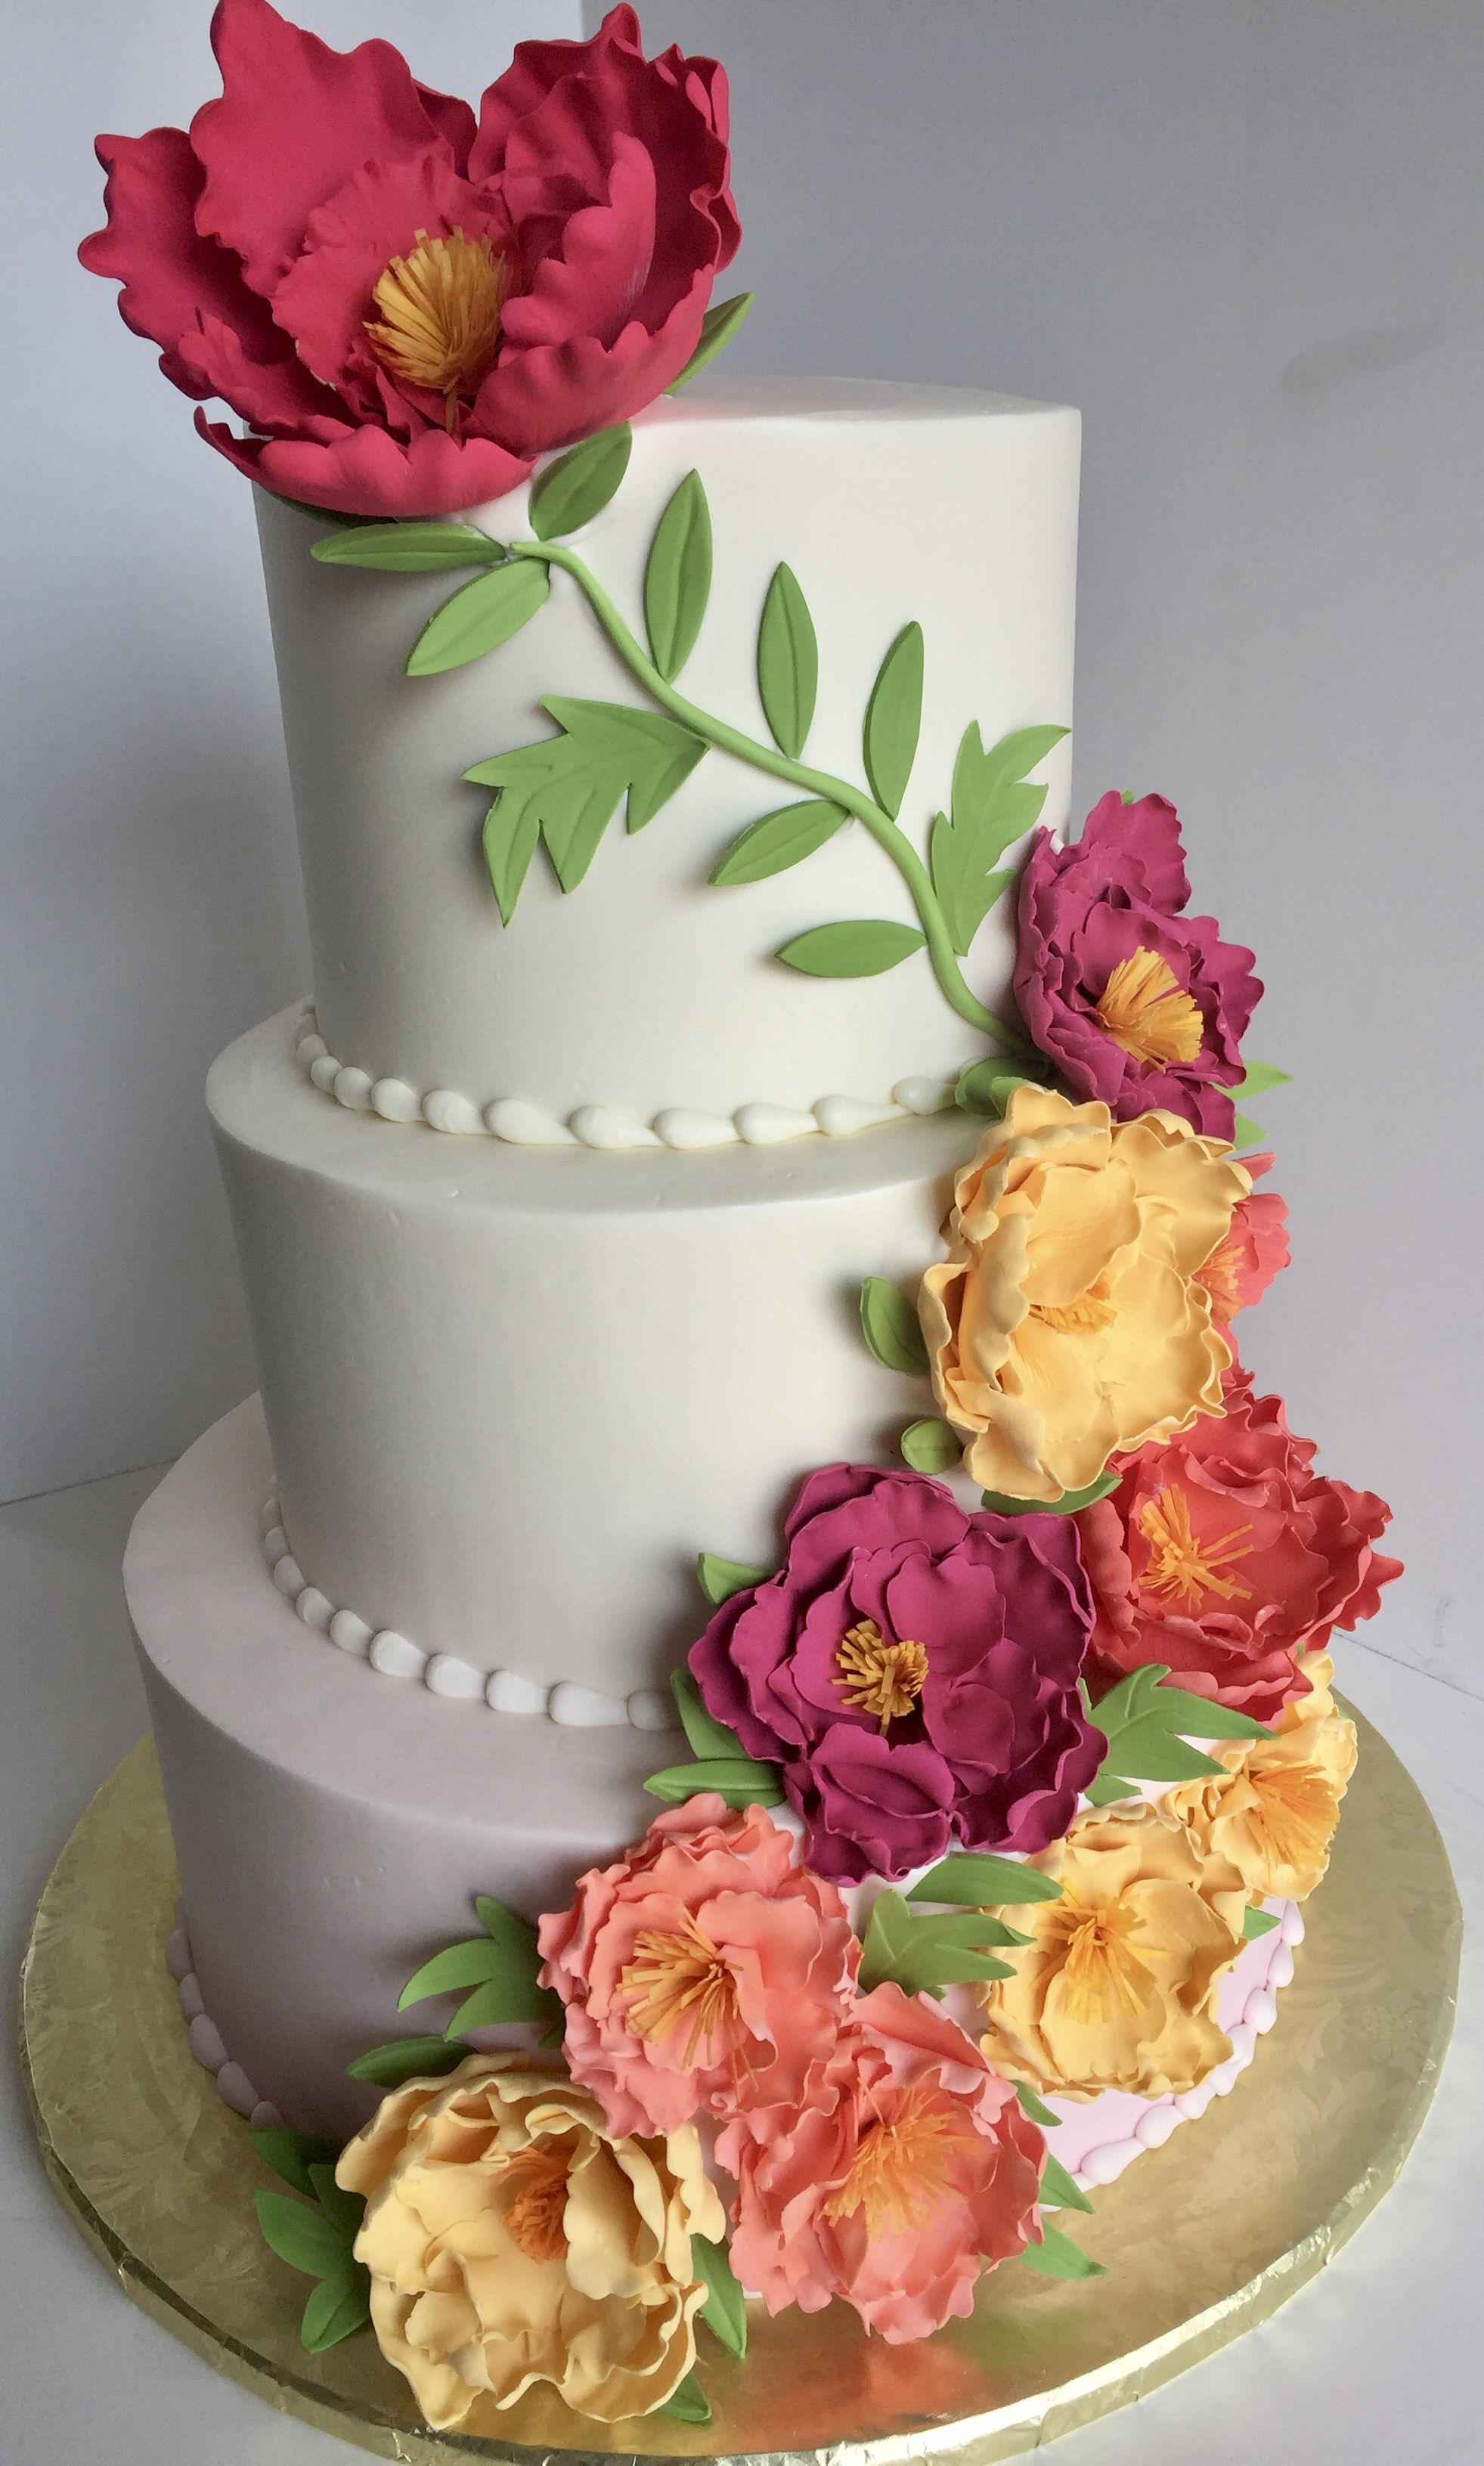 Pin by The Clovis Castle on Wedding Cakes & Cupcakes